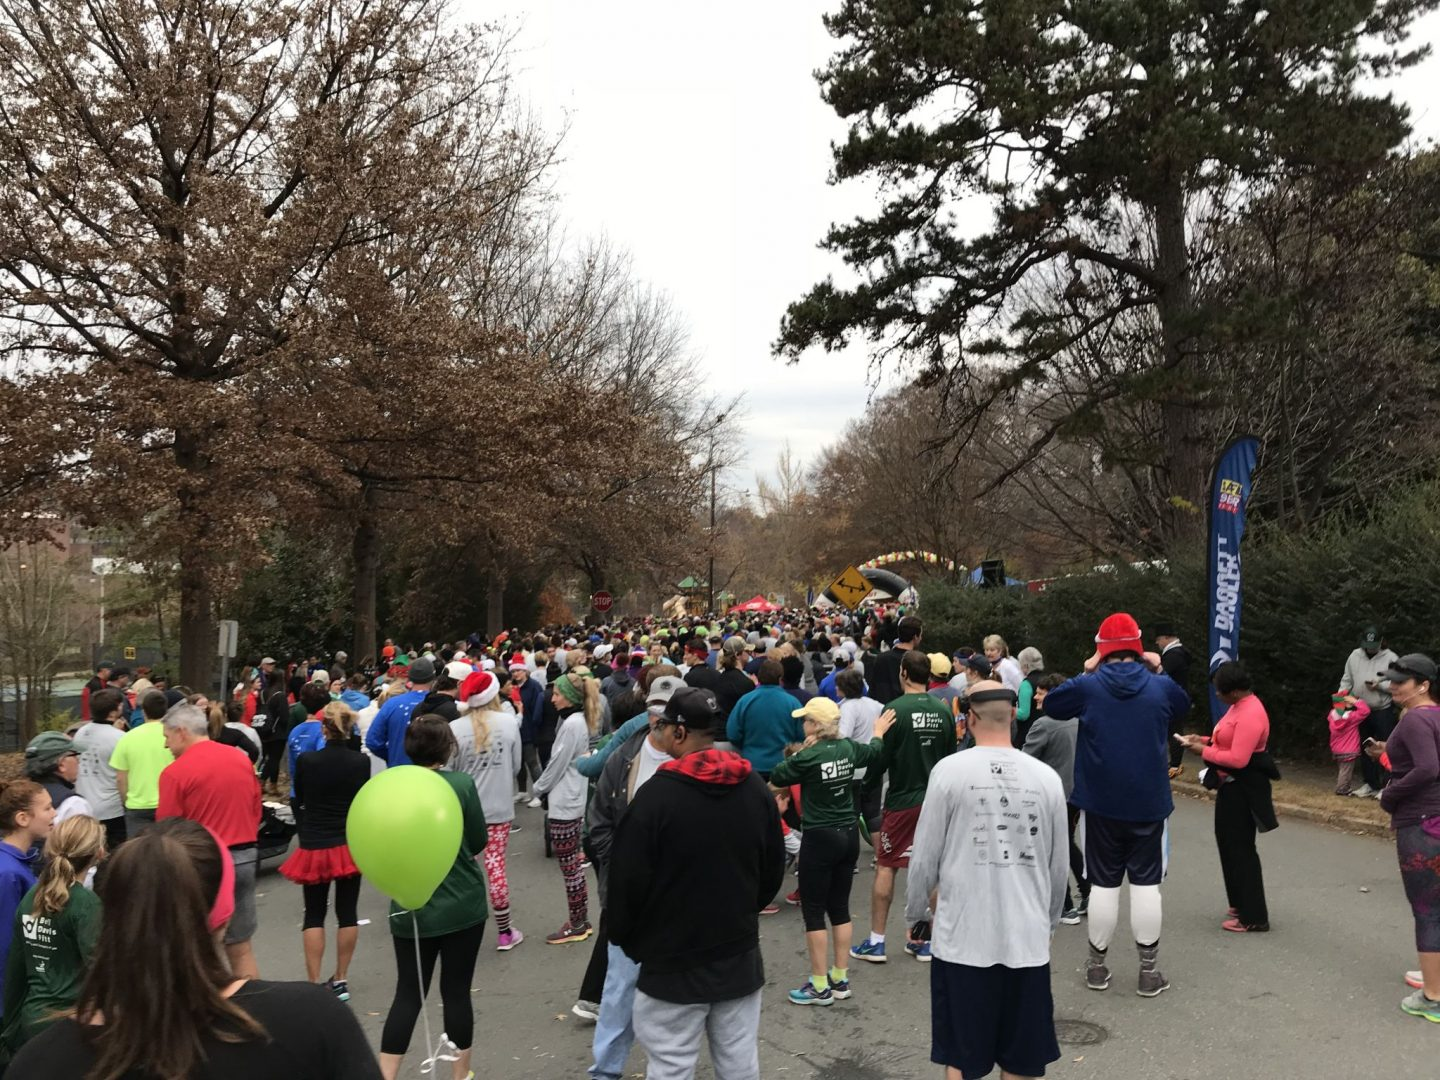 YMCA Mistletoe Run - Winston Salem - Lauren Schwaiger Blog